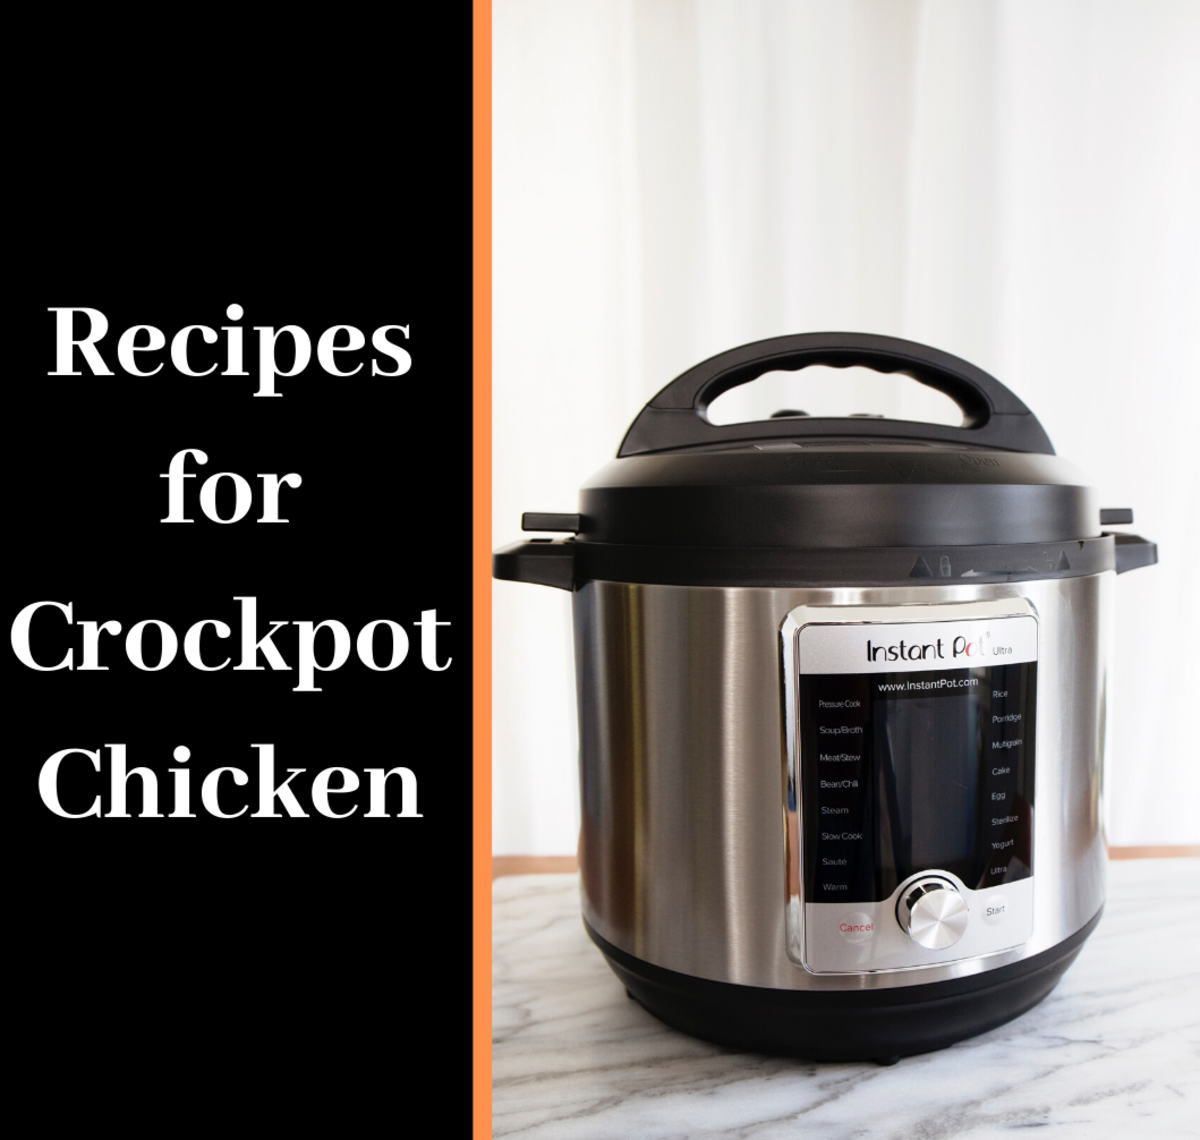 6 Recipes for Slow Cooker or Crockpot Chicken